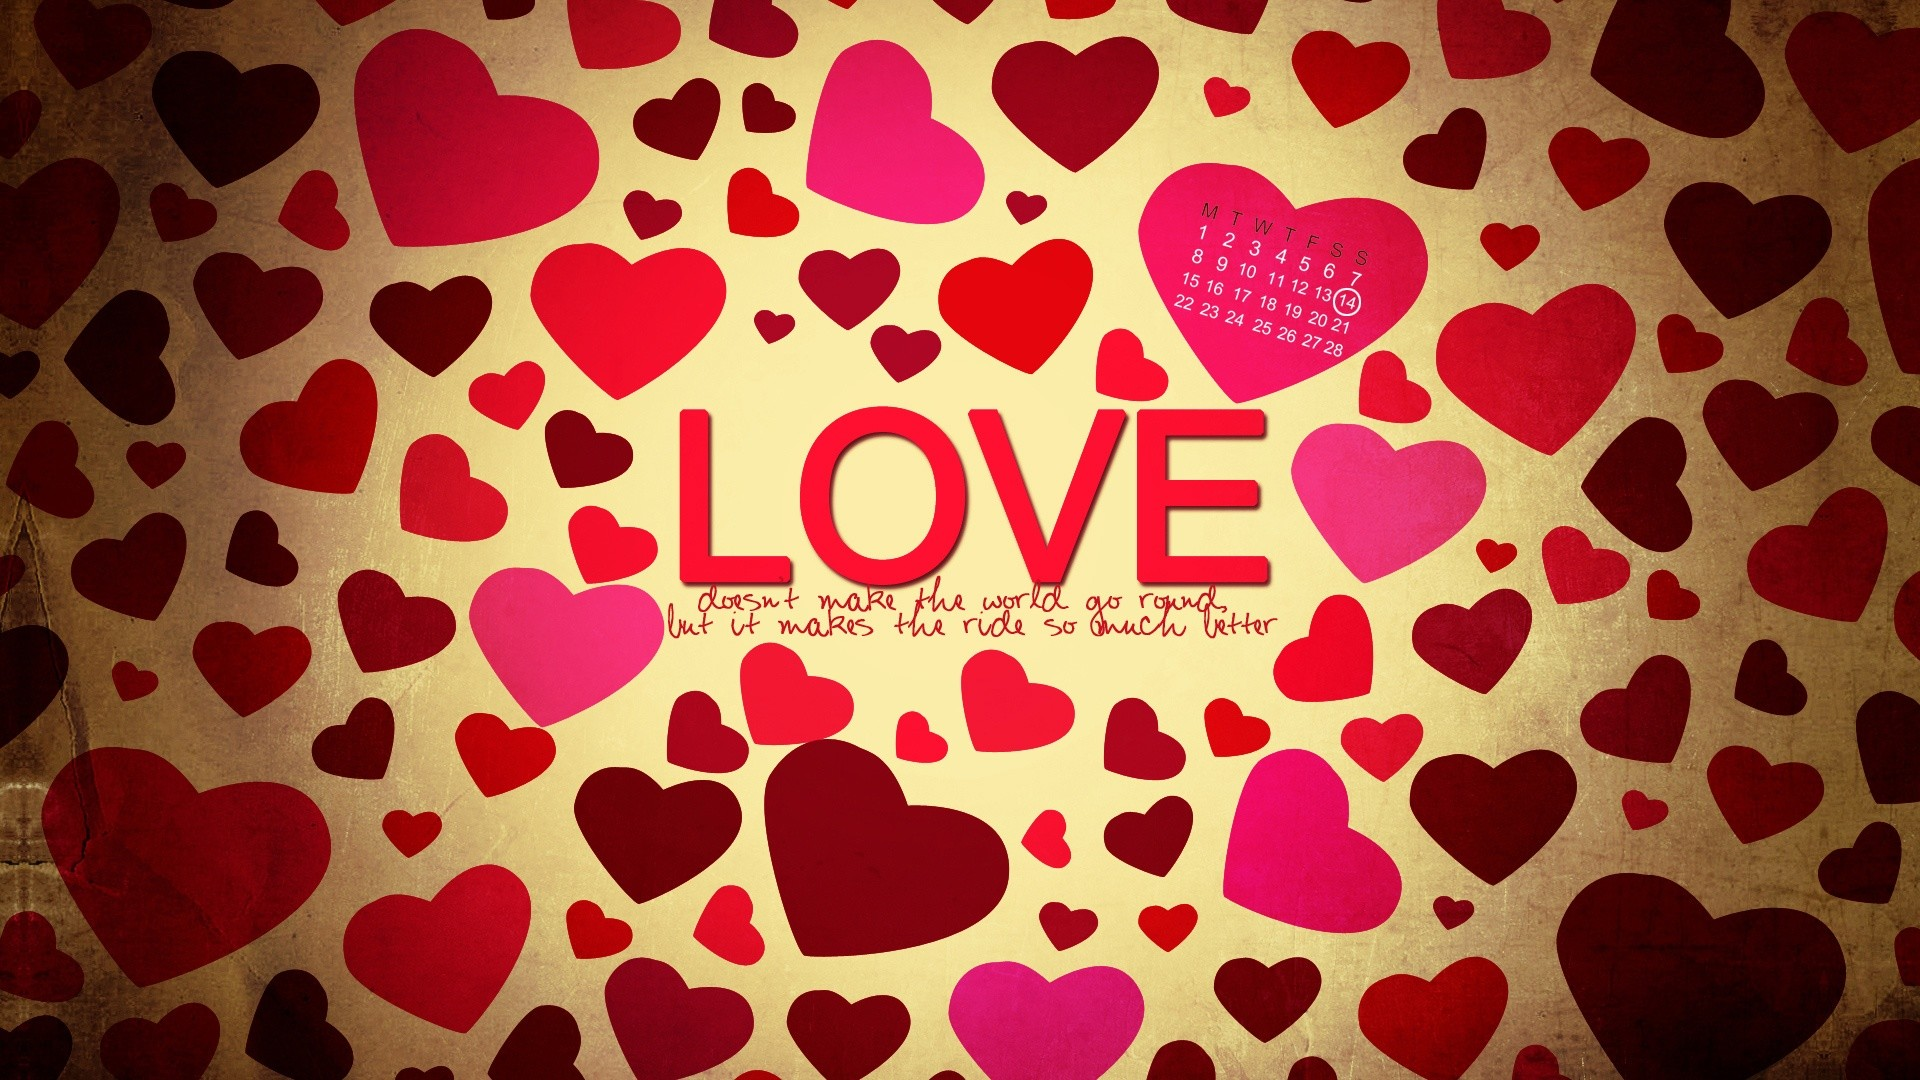 1920x1080 Valentines Day Love Wallpaper HD 1080p Download Cool